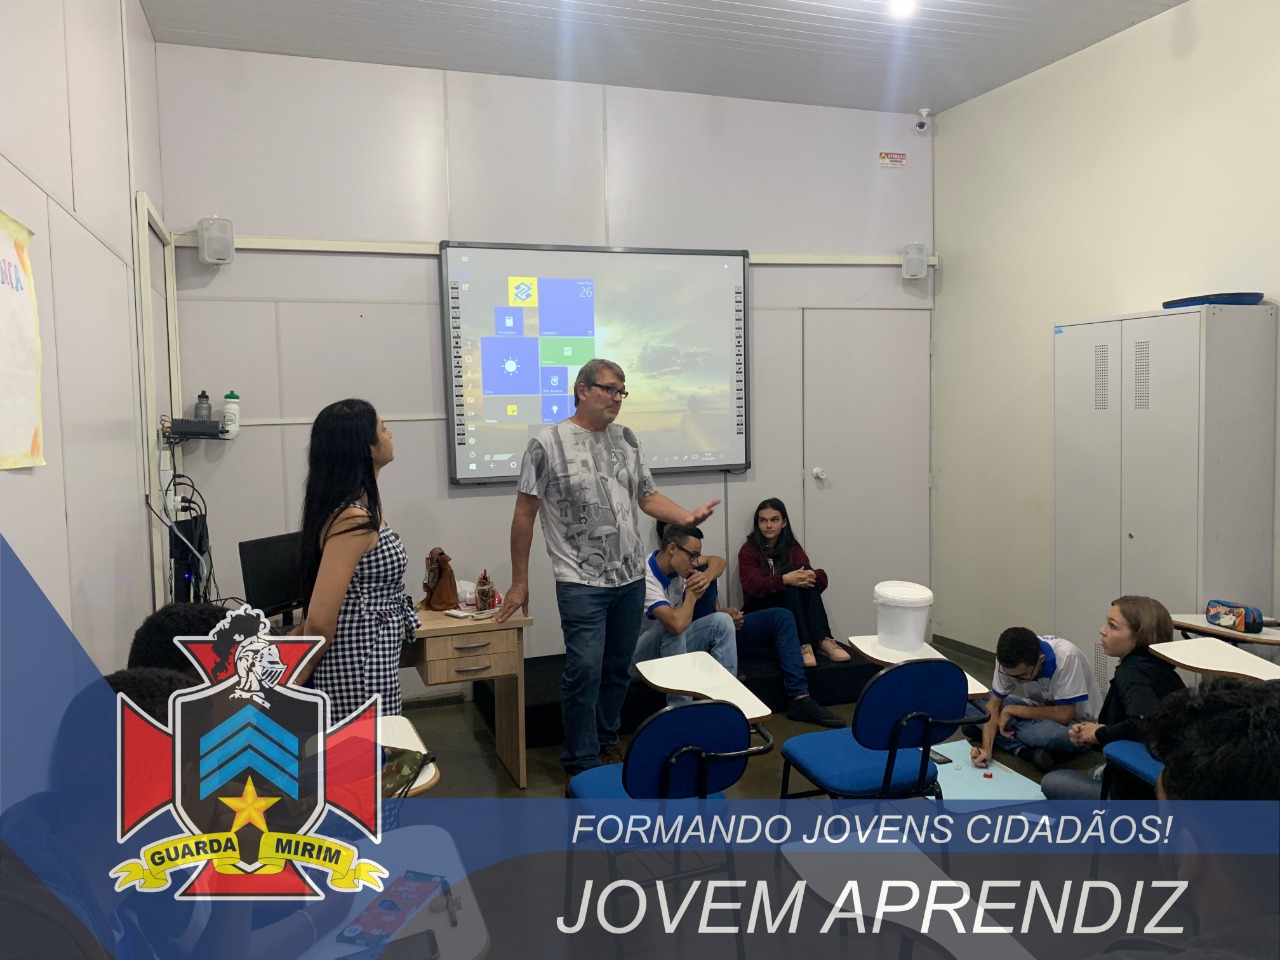 jovemaprendiz 26JUN19 9